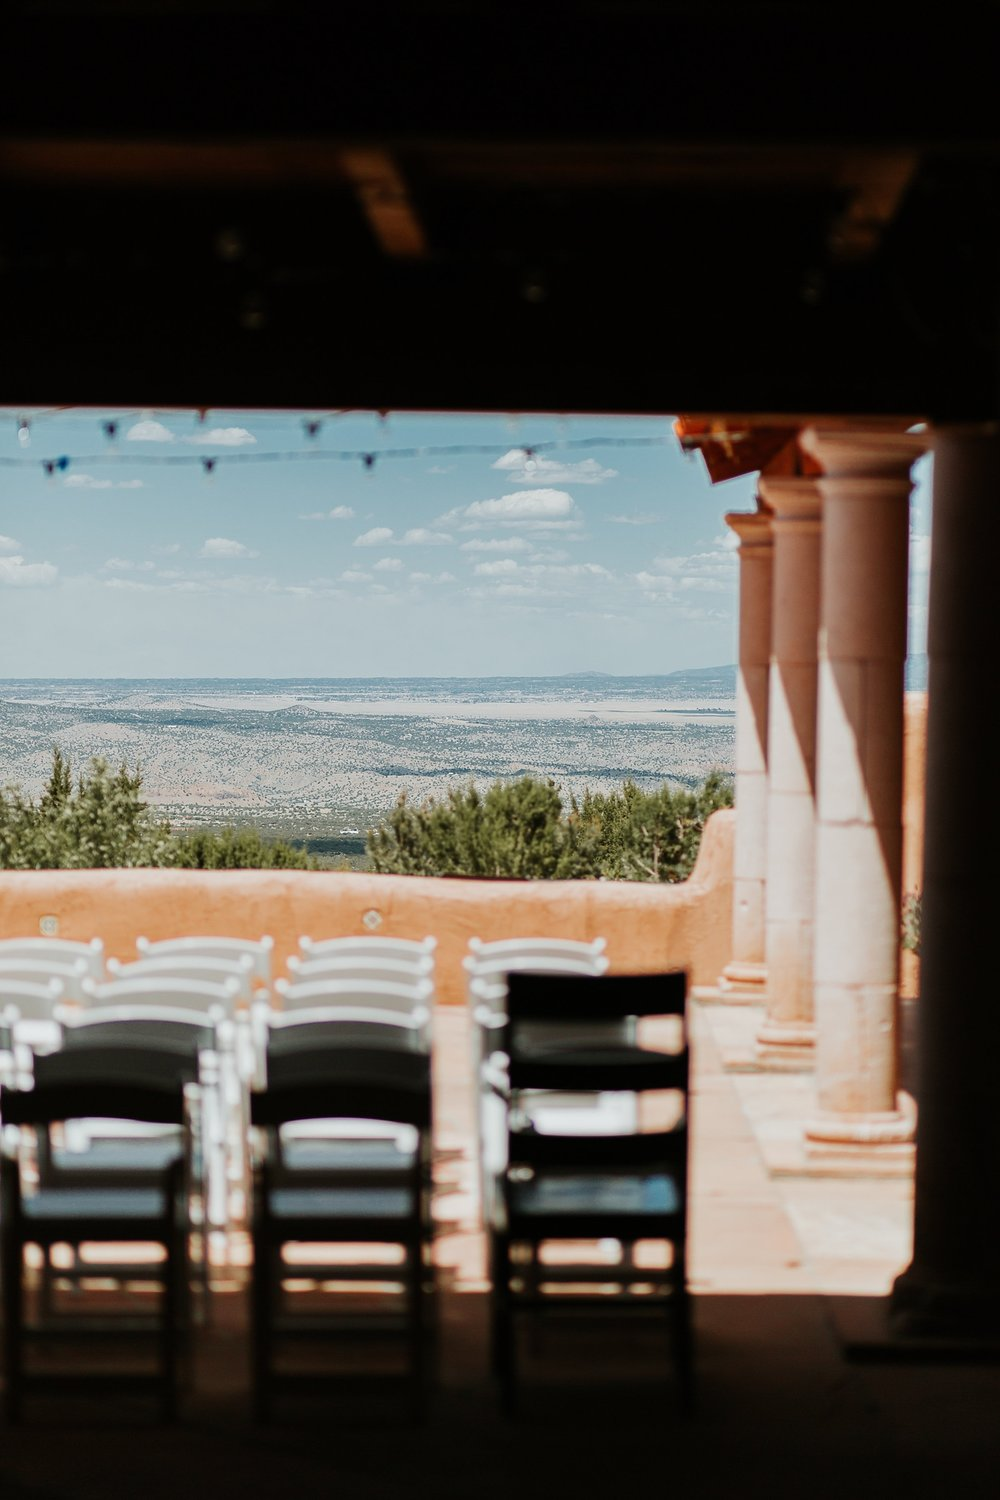 Alicia+lucia+photography+-+albuquerque+wedding+photographer+-+santa+fe+wedding+photography+-+new+mexico+wedding+photographer+-+hacienda+dona+andrea+wedding+-+destination+wedding+-+new+york+couple_0008.jpg